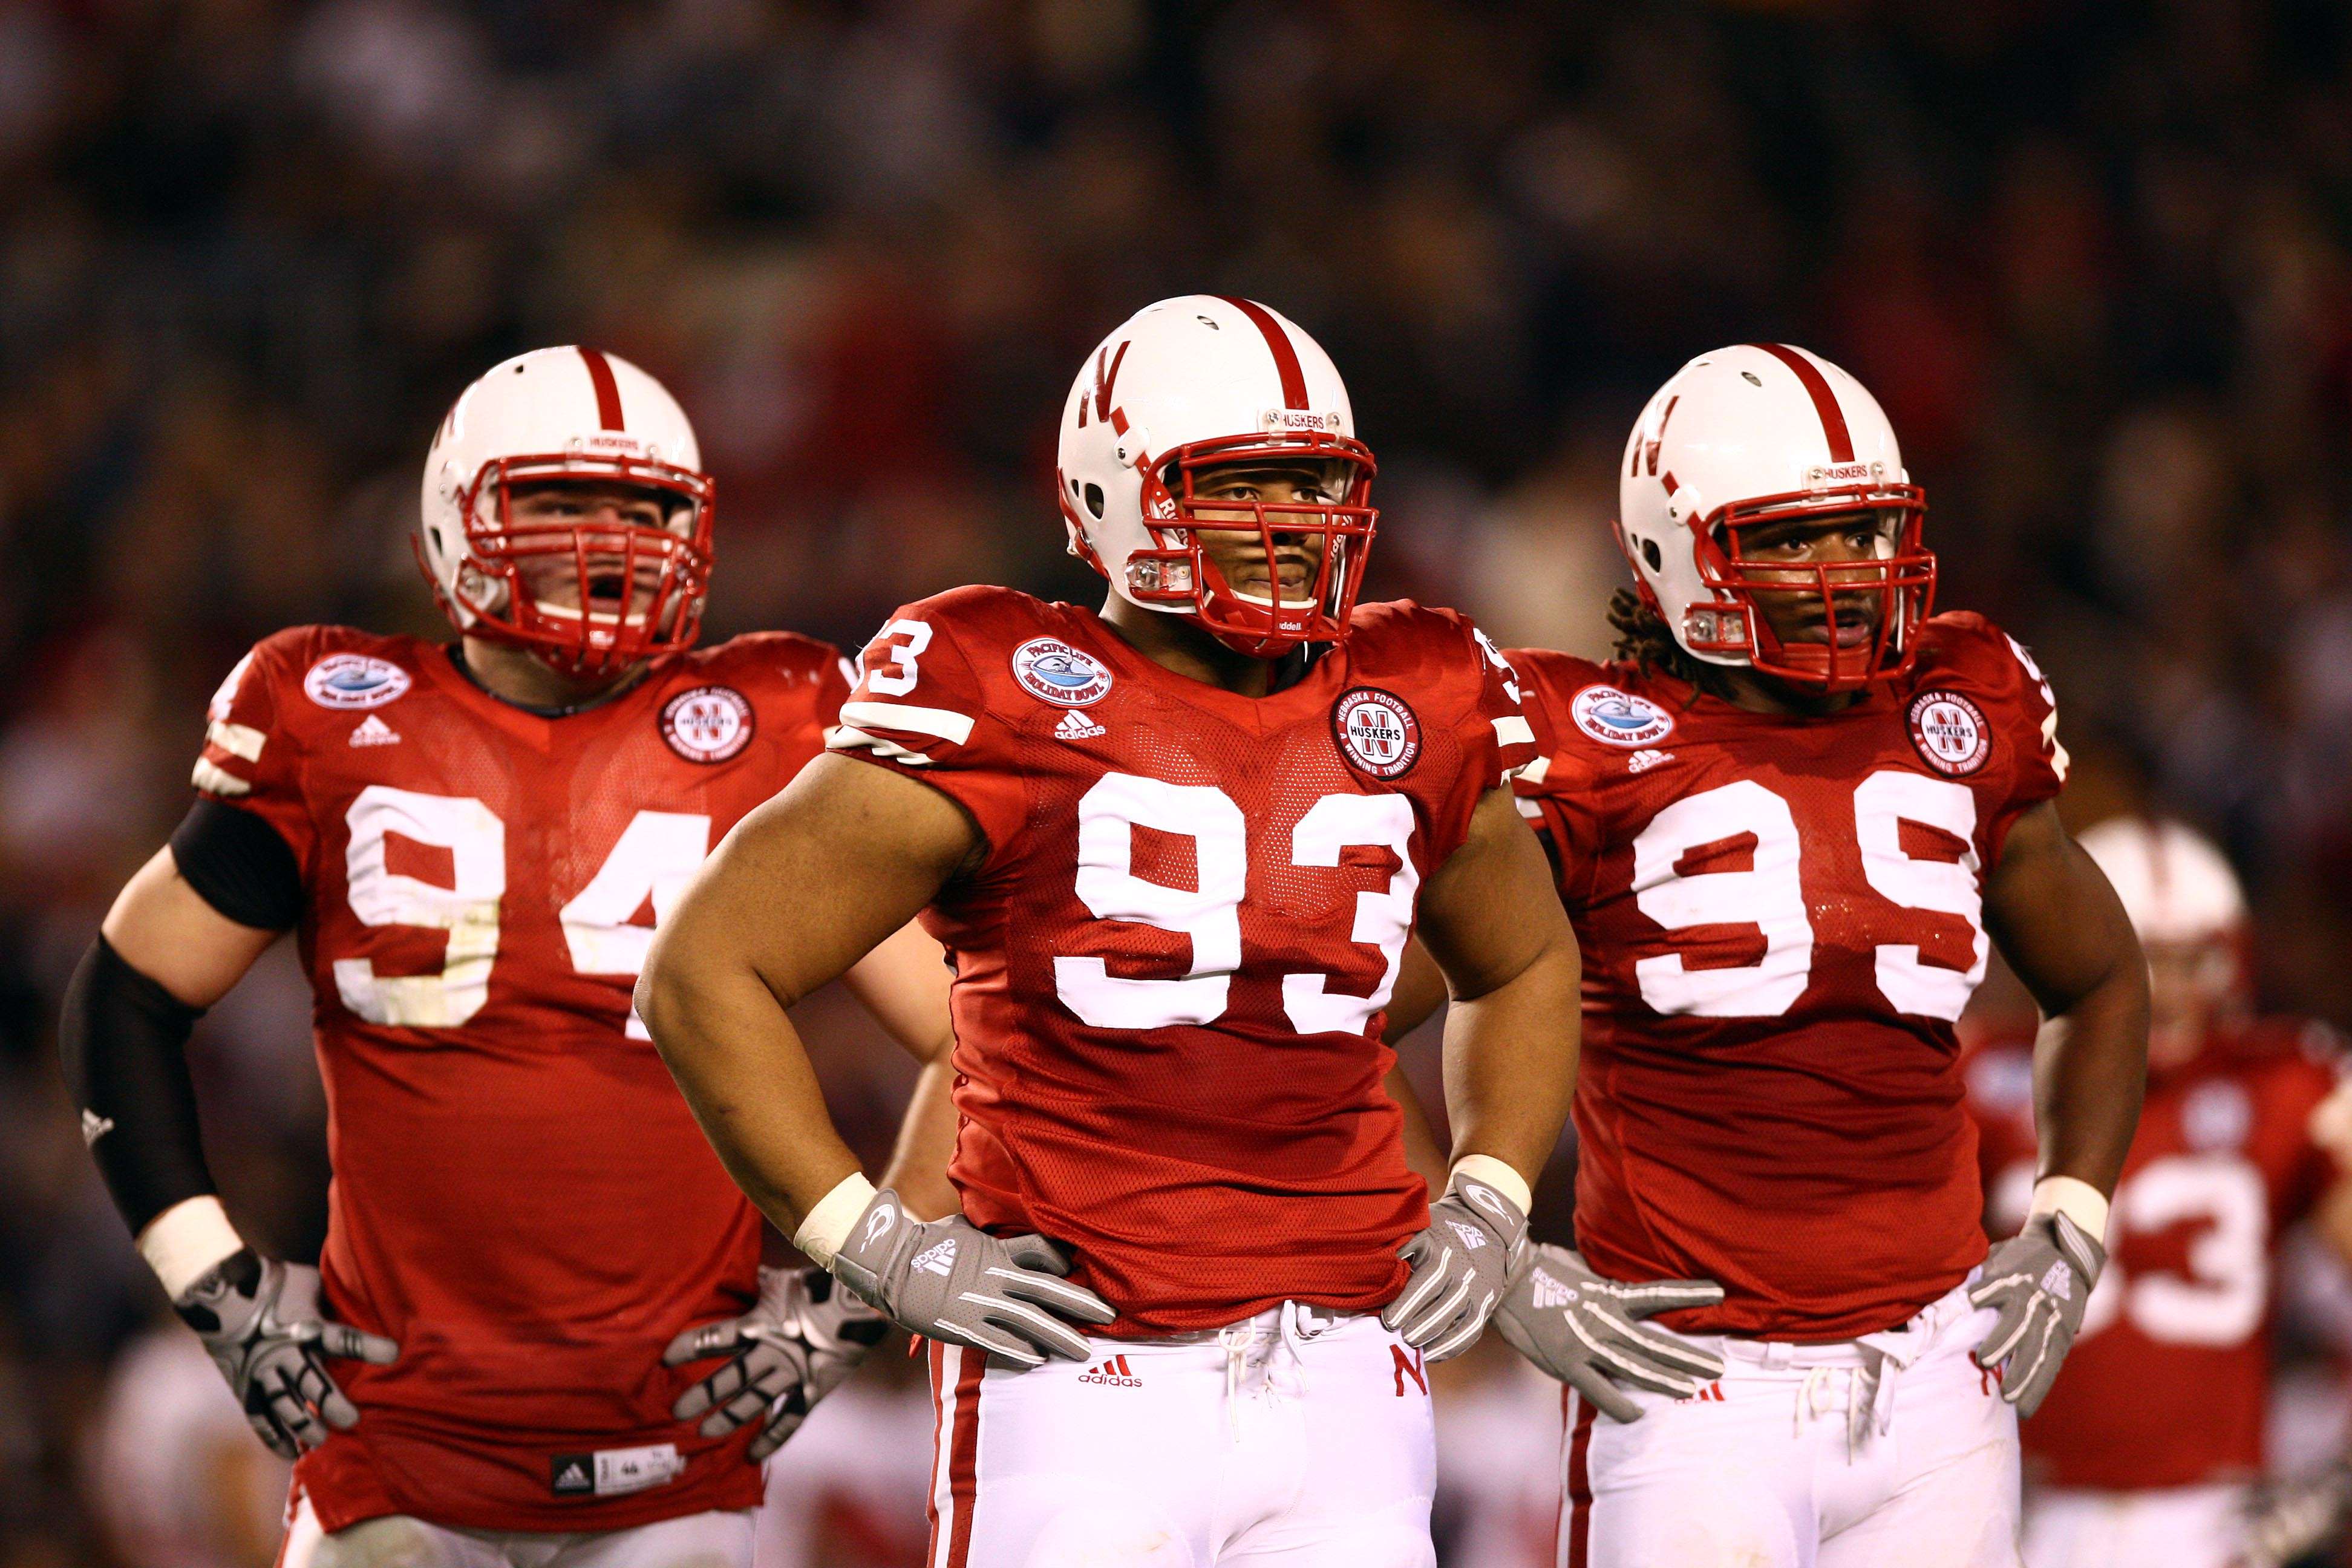 SAN DIEGO, CA - DECEMBER 30:  Defensive Tackle Ndamukong Suh #93 of the University of Nebraska Cornhuskers looks on with teammates Jared Crick #94 and Barry Turner #99 against the University of Arizona Wildcats during the Pacific Life Holiday Bowl,  on De